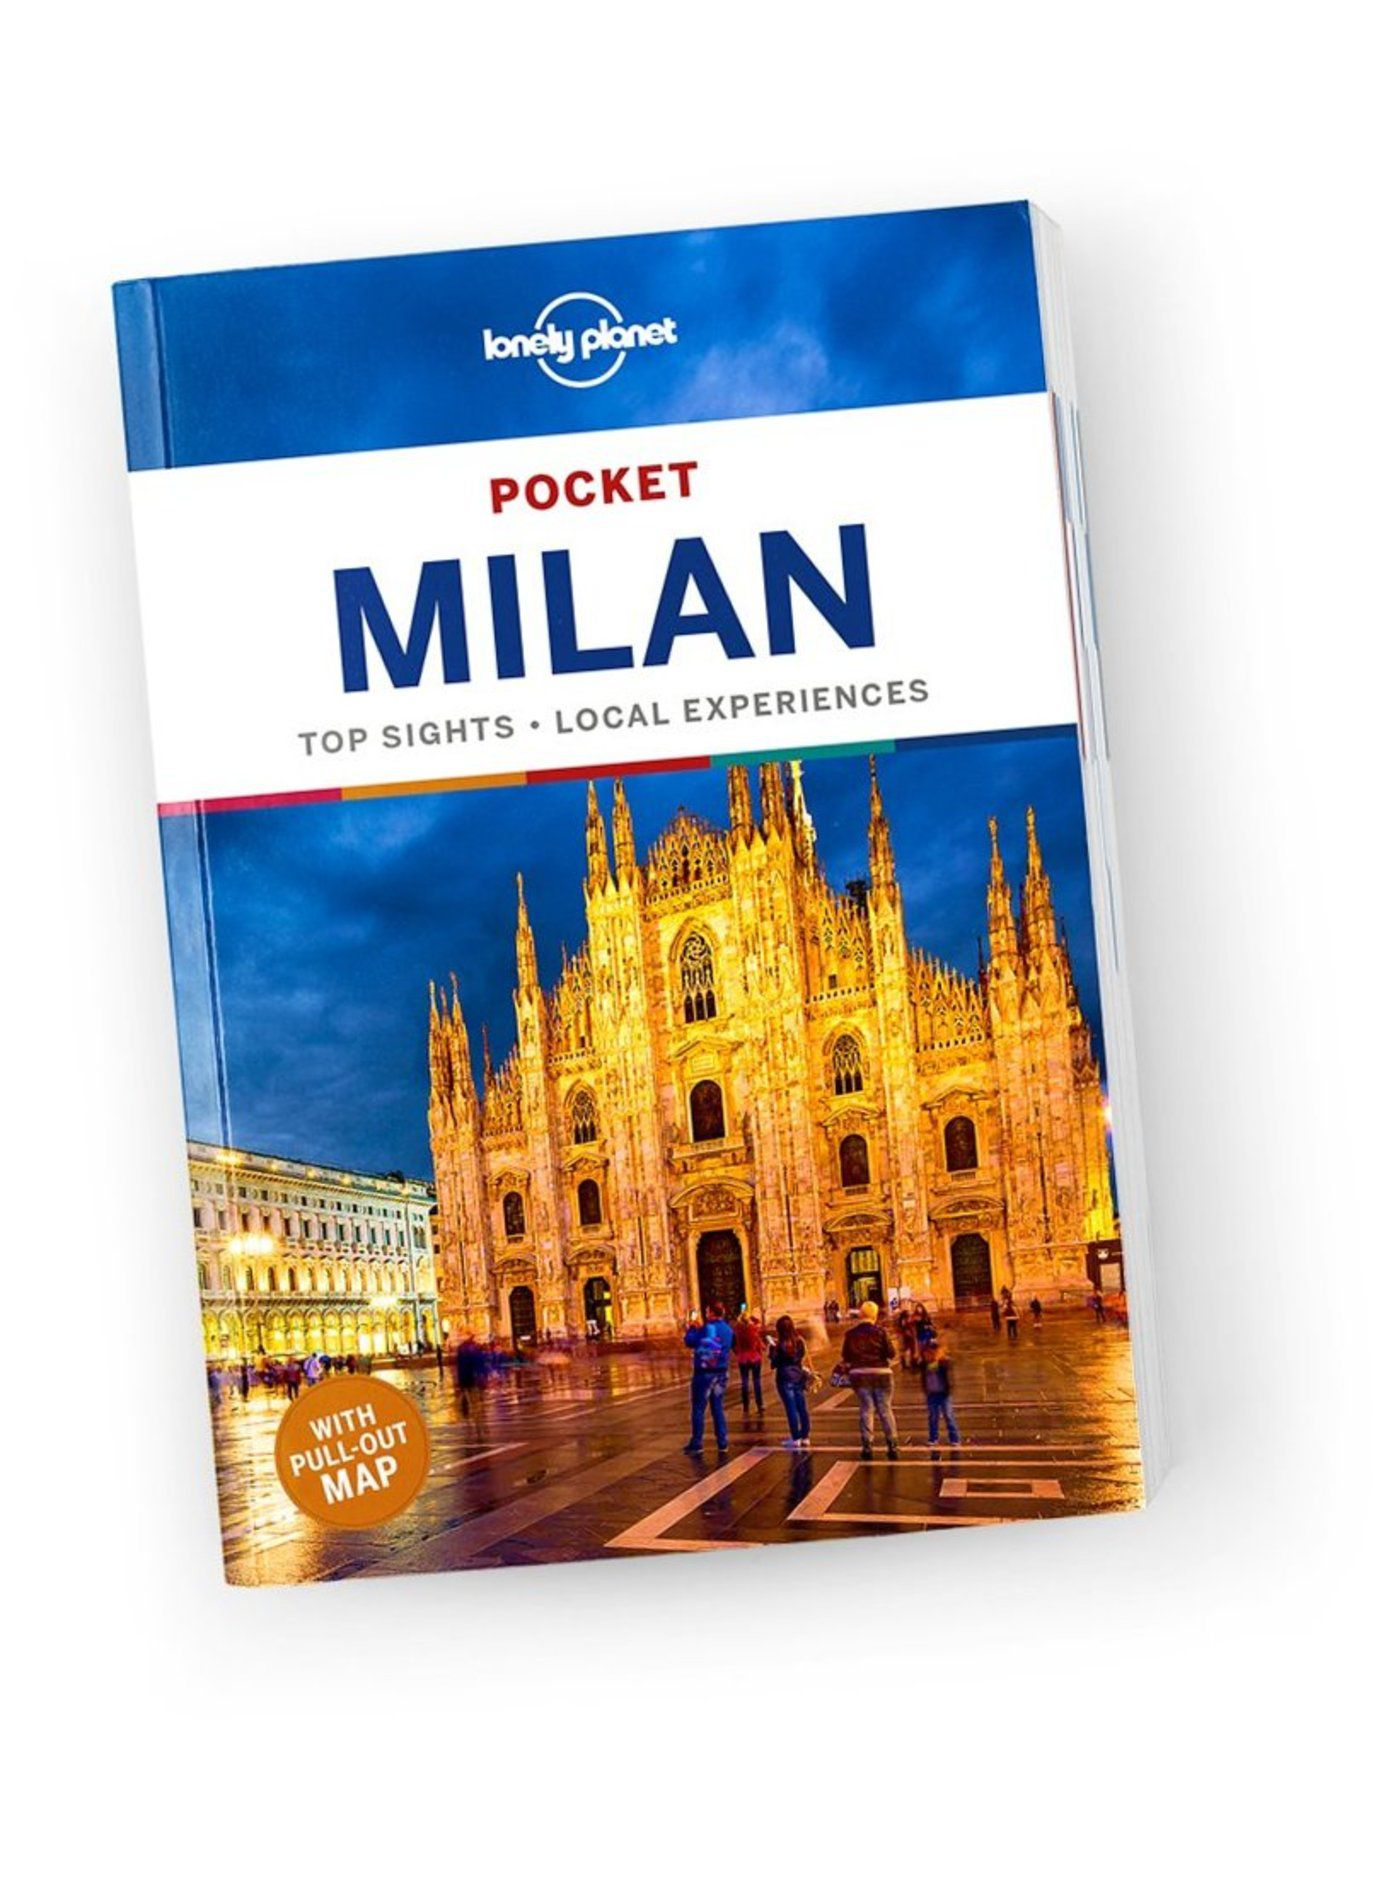 Pocket Milan